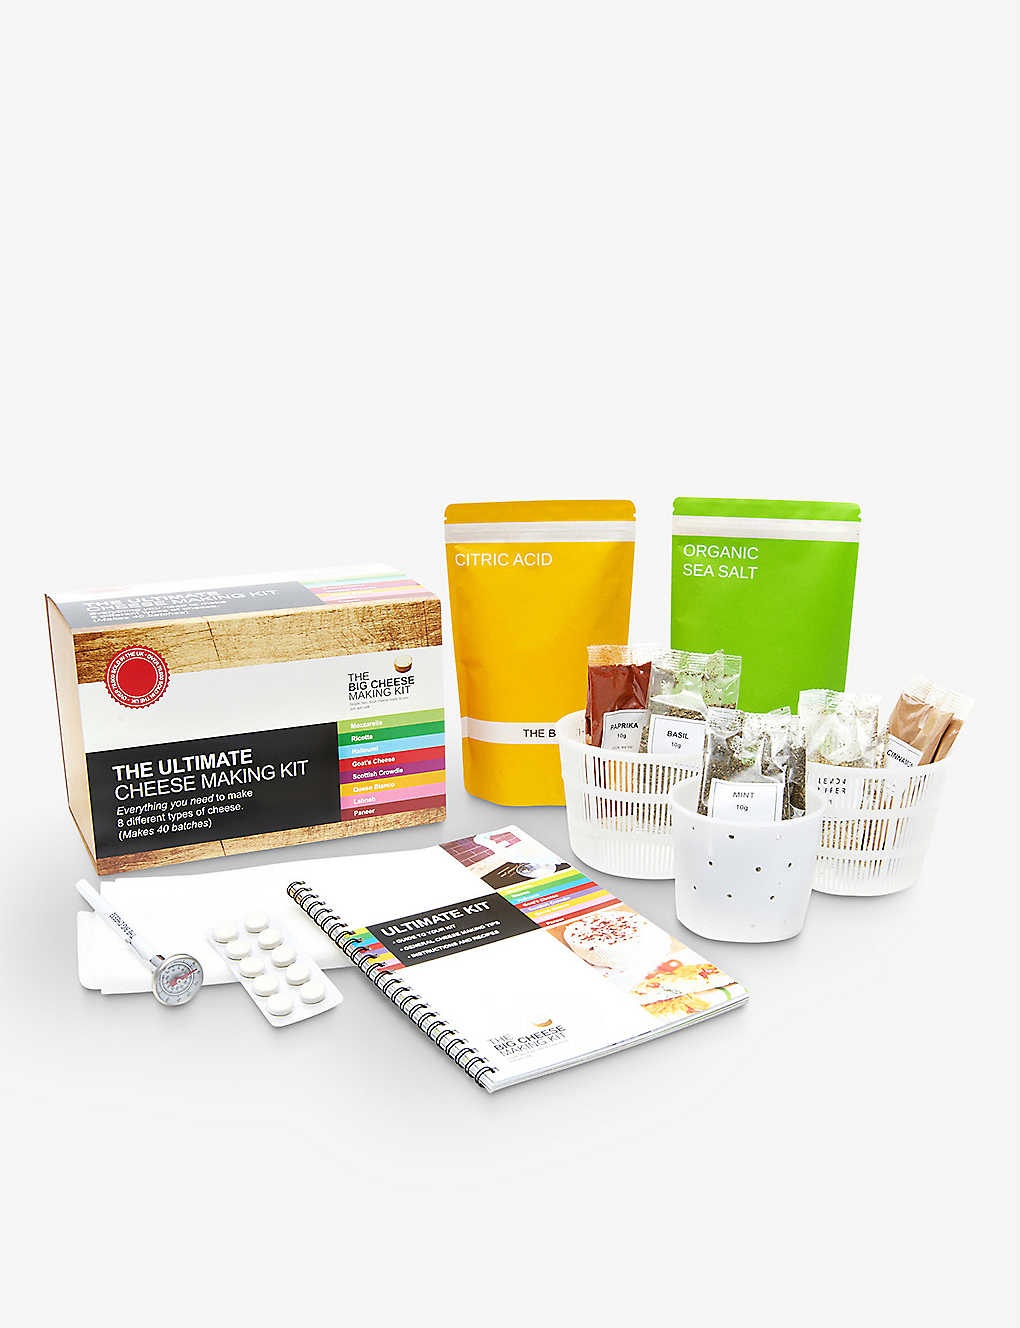 THE BIG CHEESE MAKING KIT - The ultimate cheese making kit